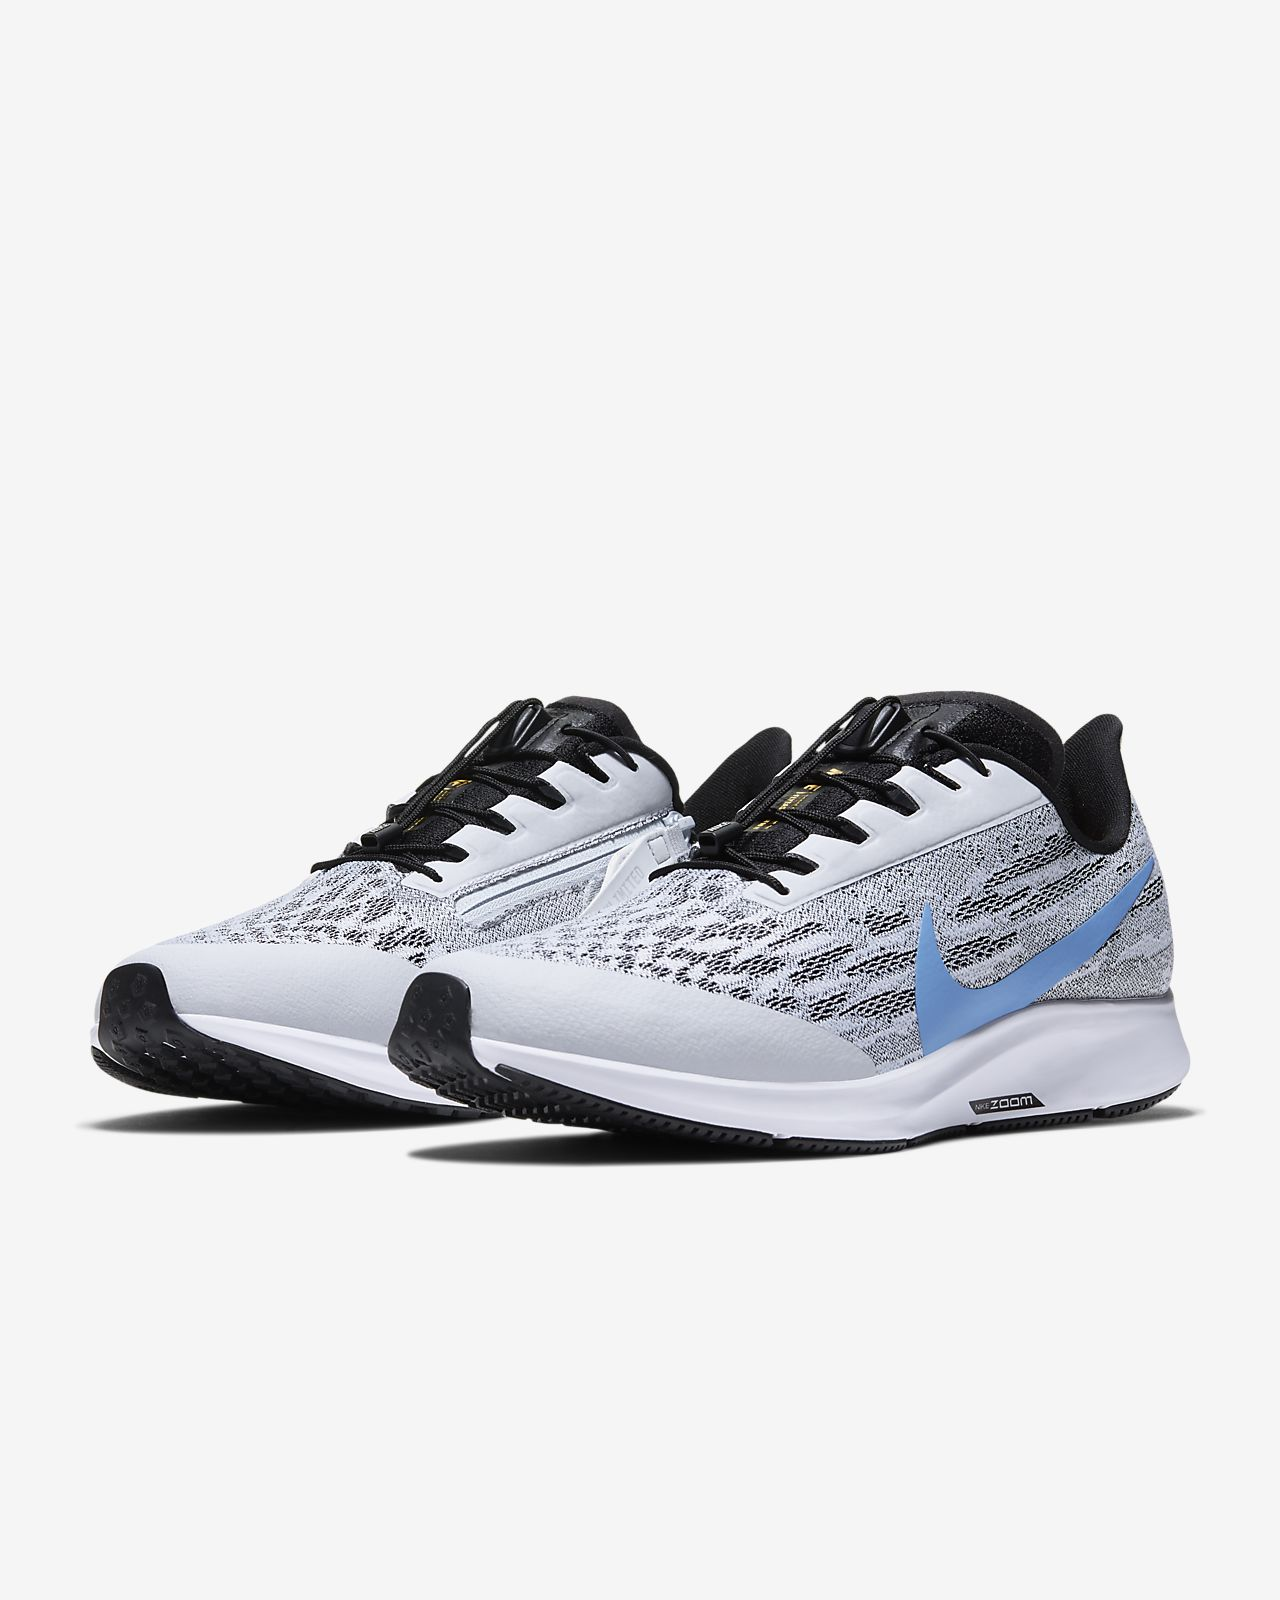 de largepour FlyEaseextra Homme Chaussure running Nike Pegasus 36 rdQhCtxs